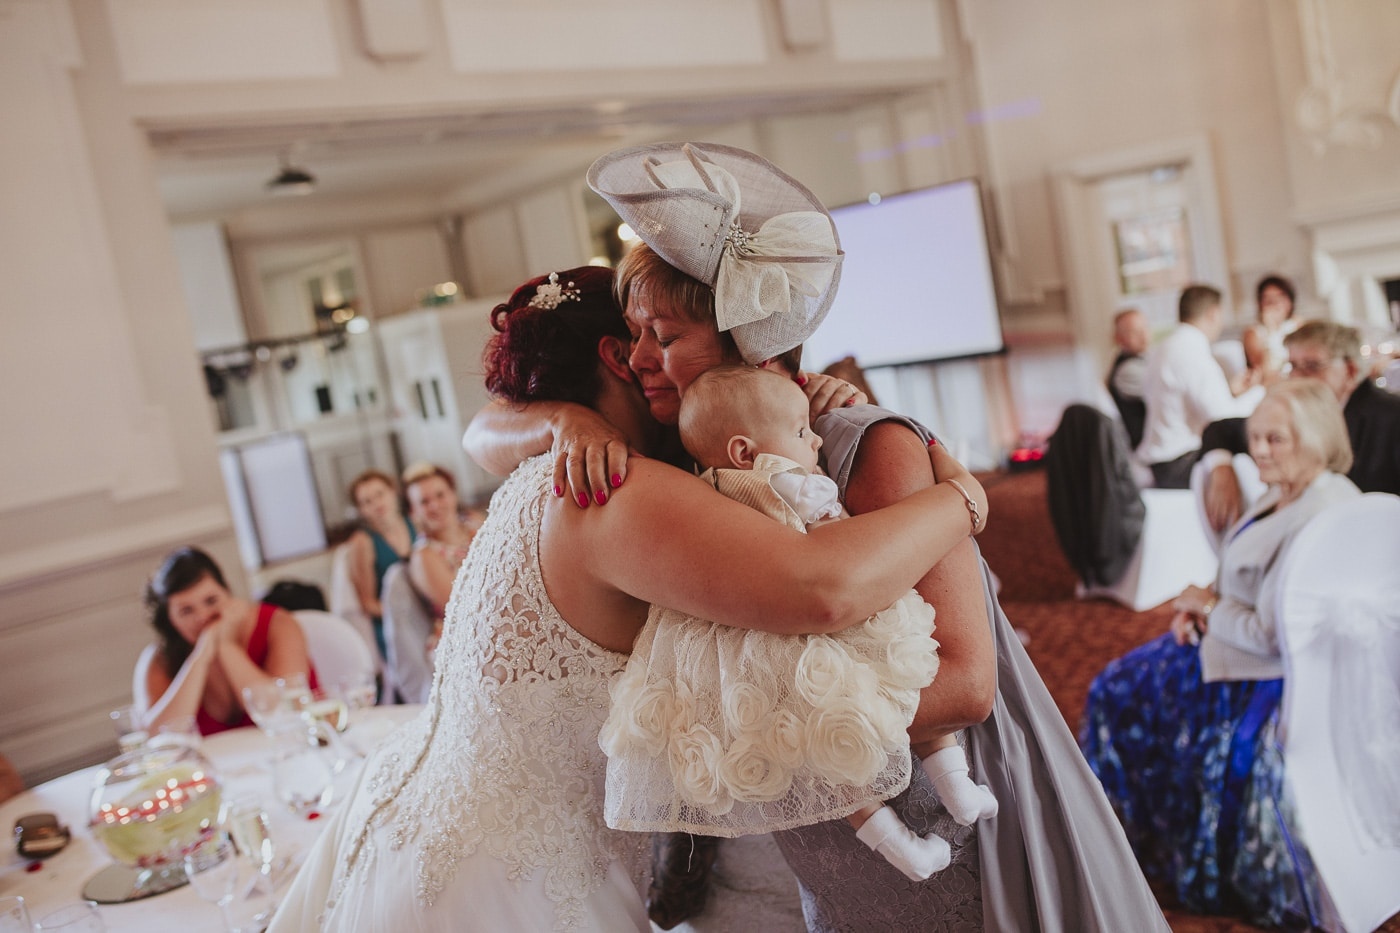 ladies hugging with baby for wedding by Joshua Wyborn photography